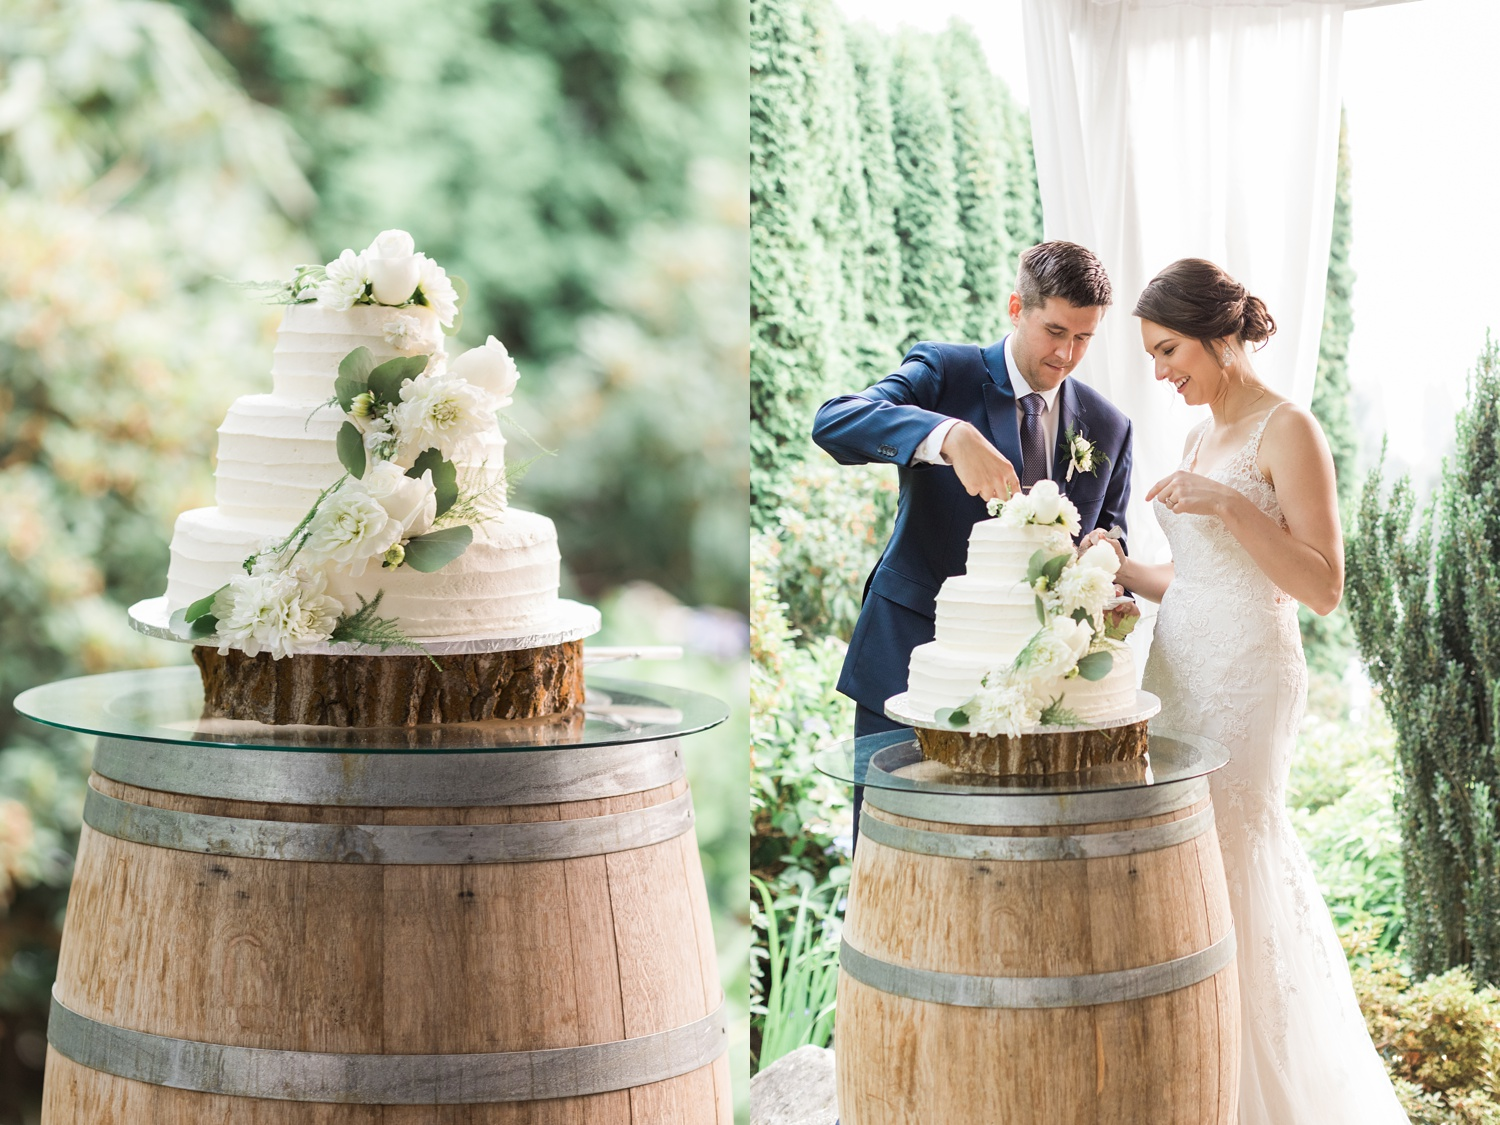 A bride and groom cut their wedding cake during their reception at Chateau Lill in Woodinville, a wedding venue near Seattle, WA. | Joanna Monger Photography | Seattle & Snohomish Photographer